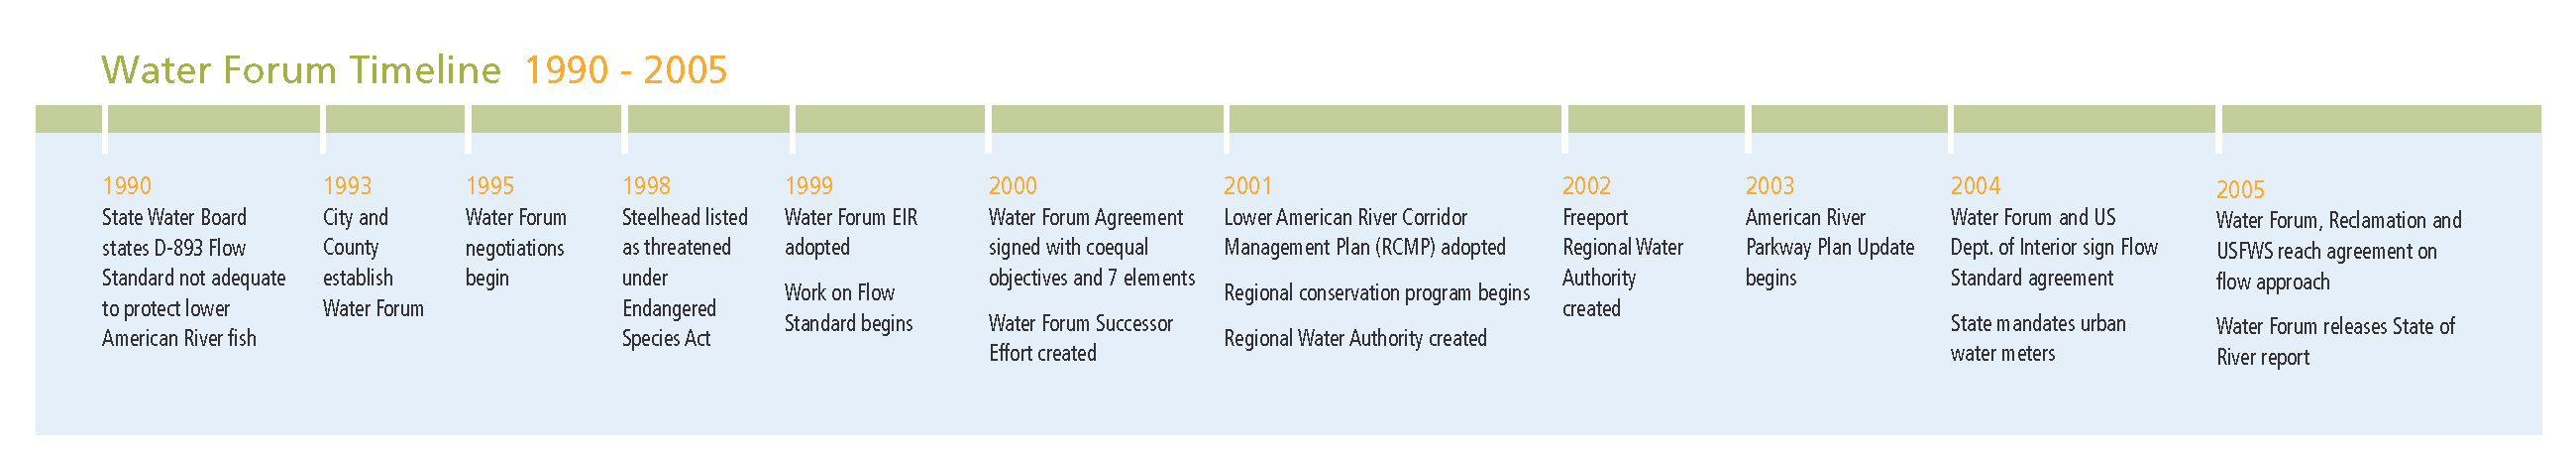 WaterForum timeline_Page_1